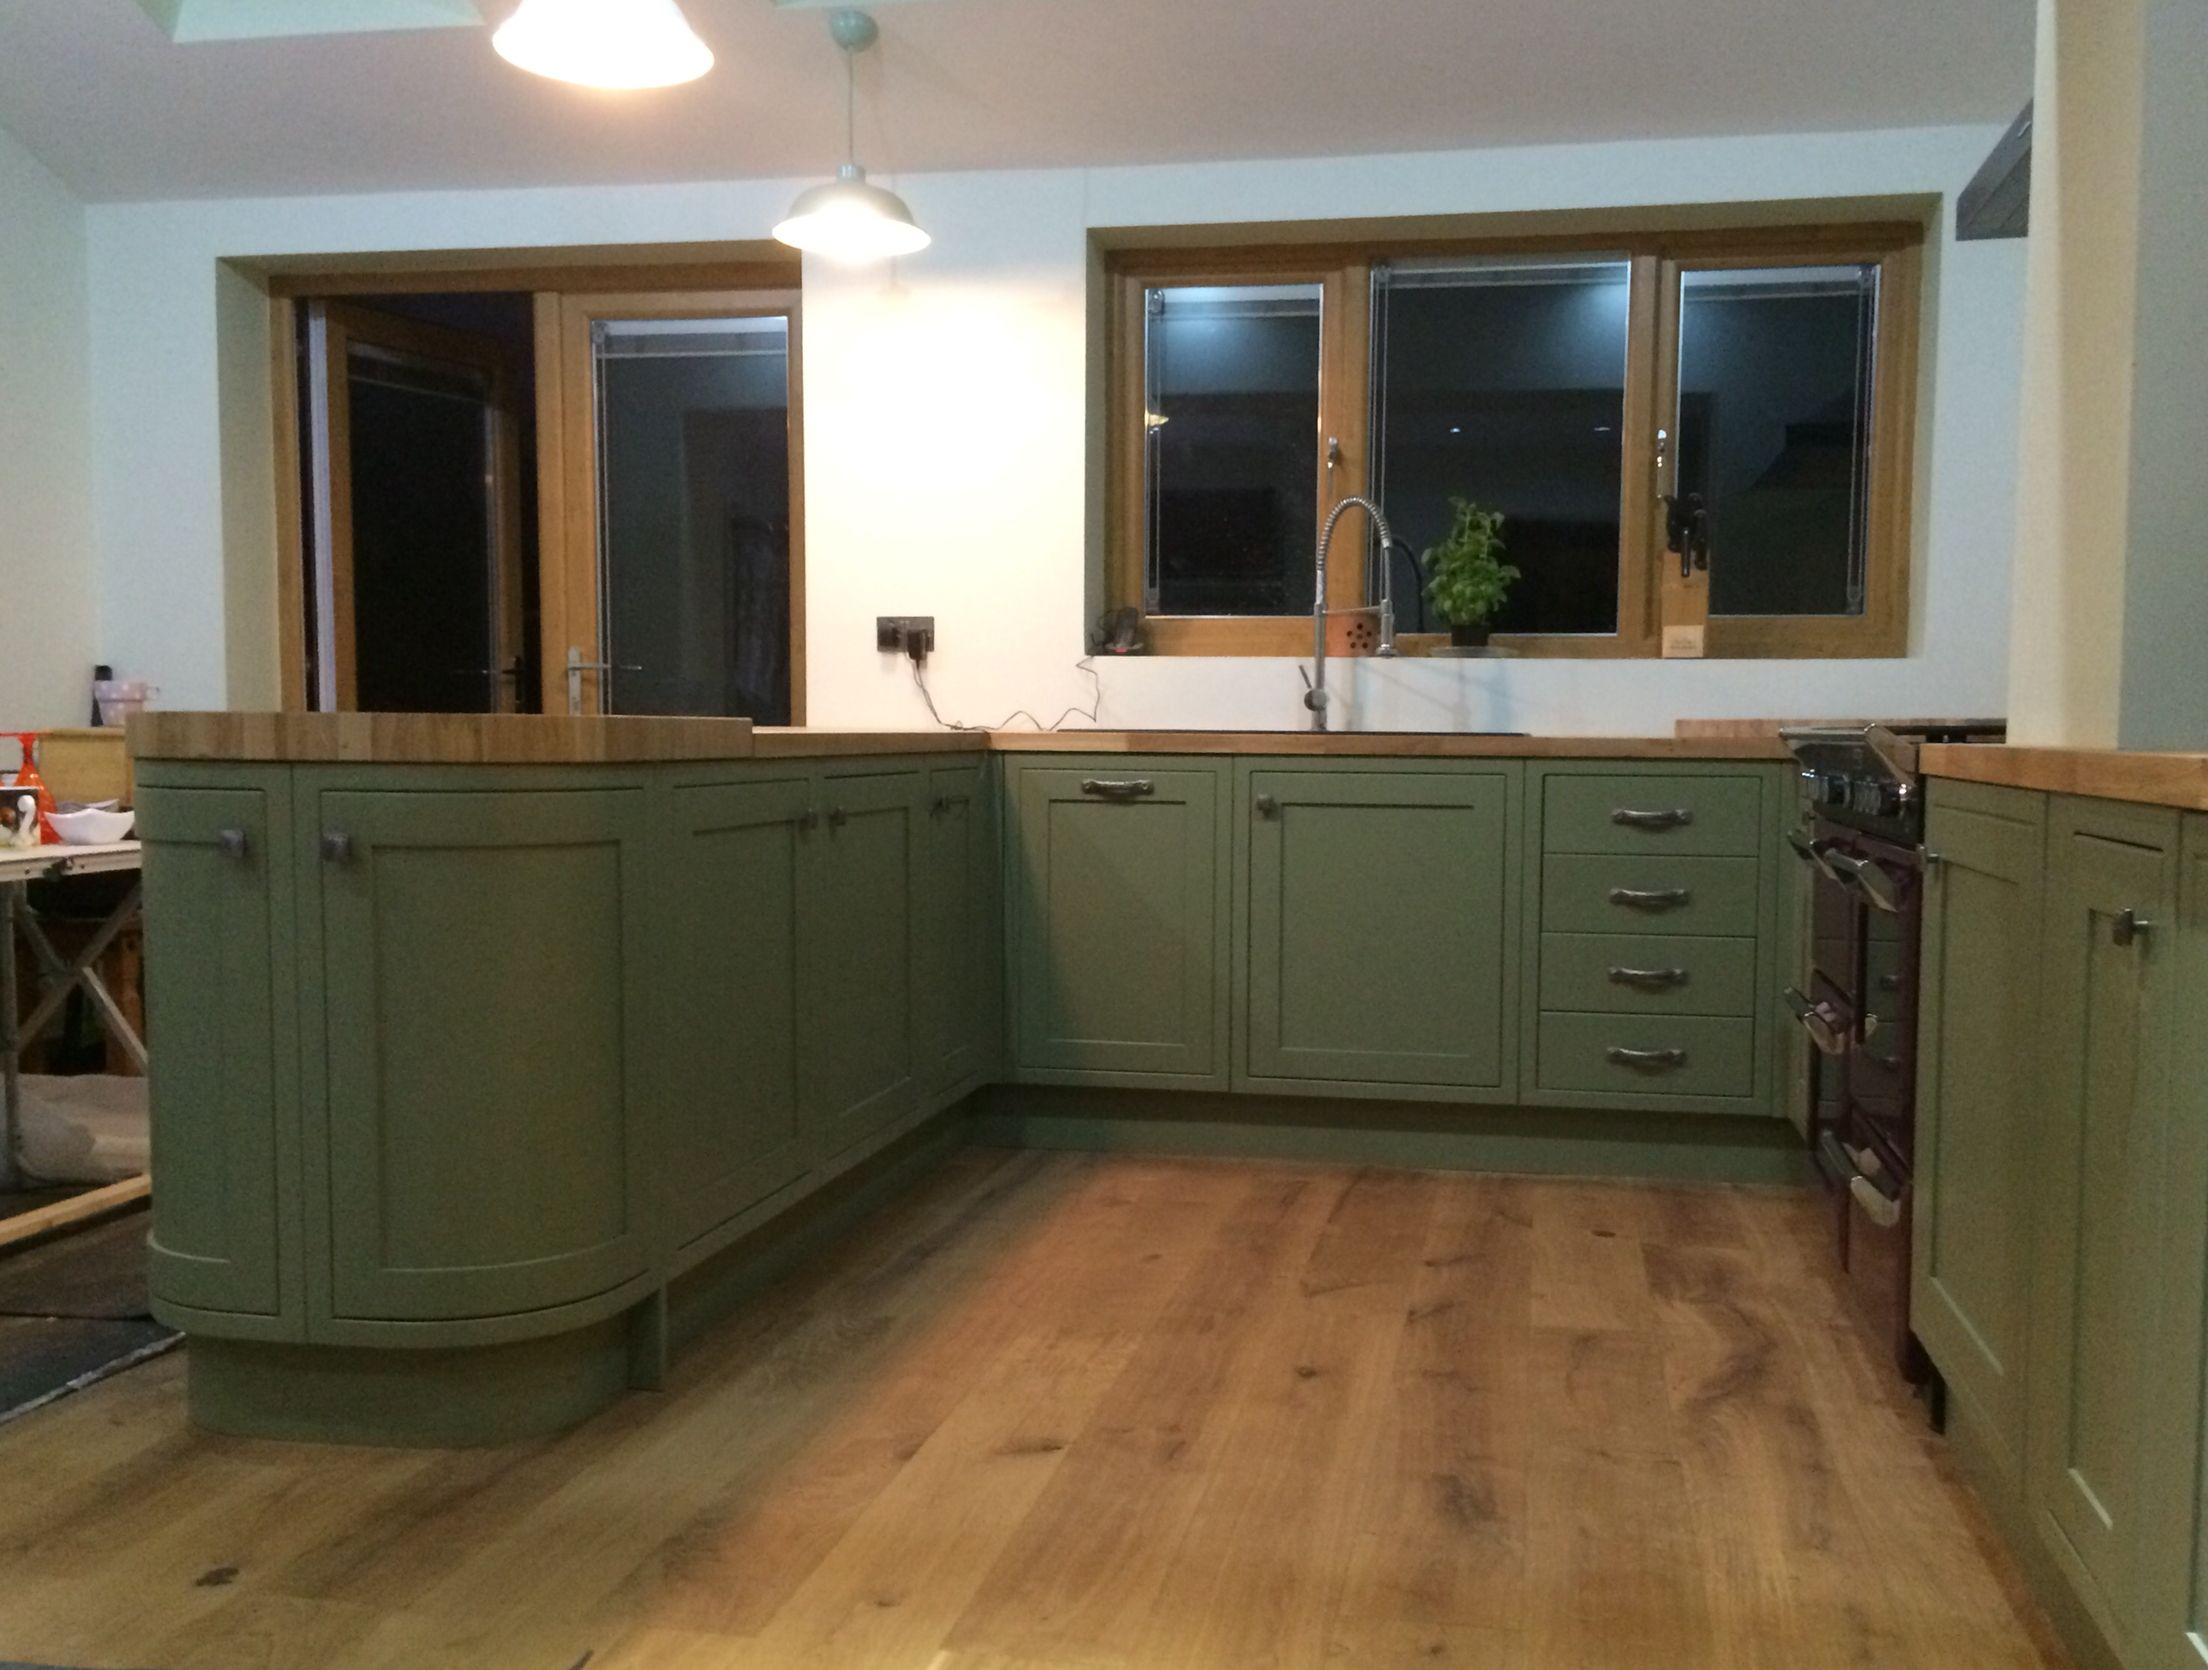 Best Bespoke Painted Kitchen In Olive Farrow Ball House 640 x 480